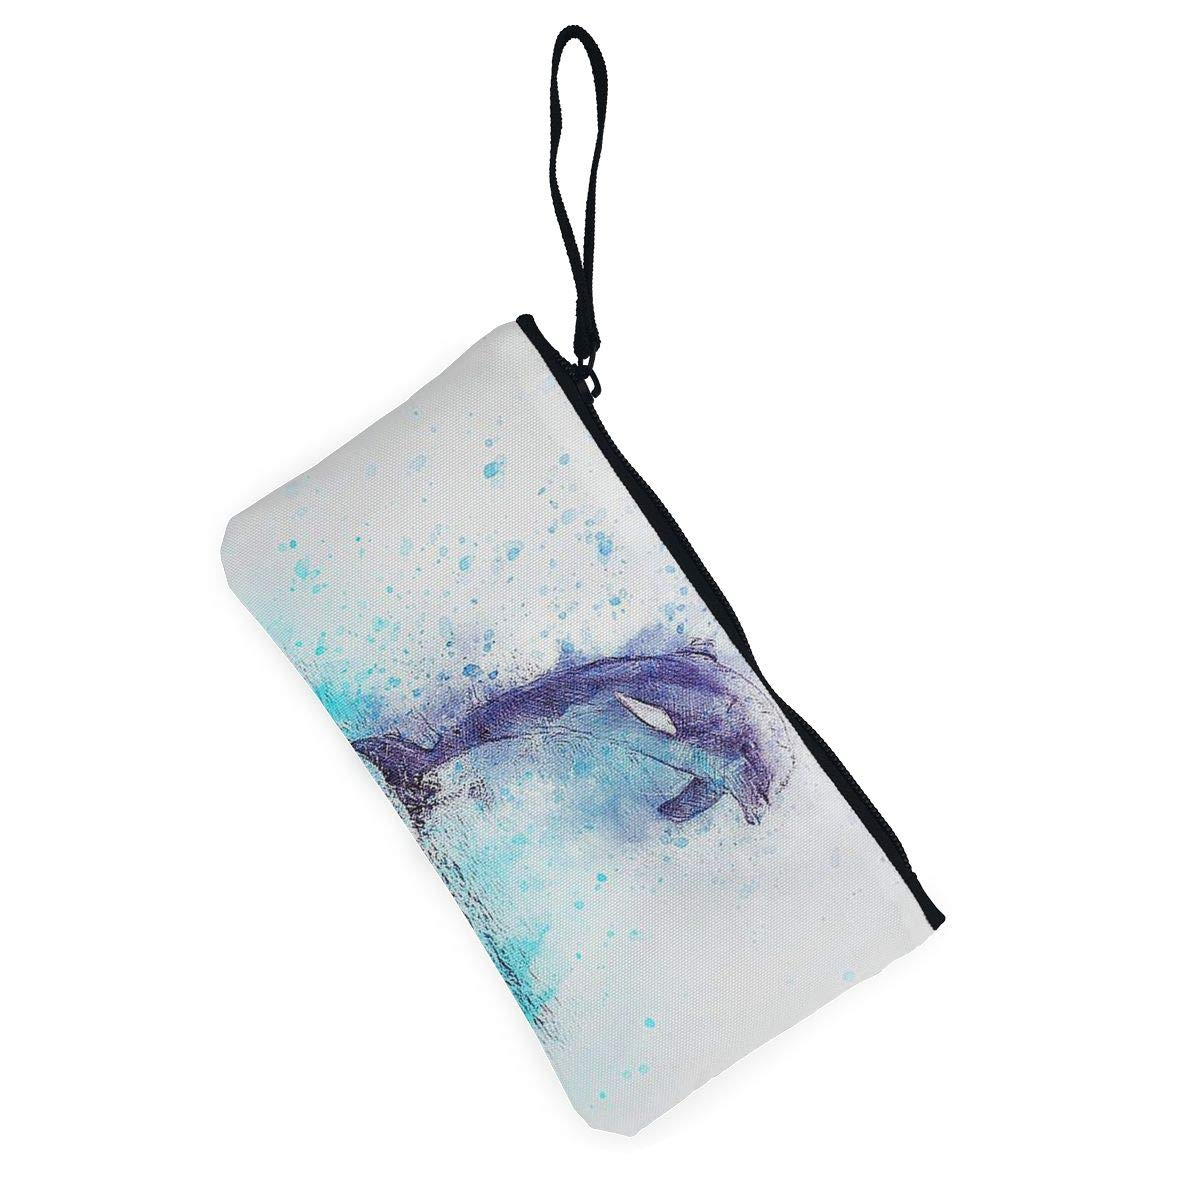 Maple Memories Watercolor Dolphin Animal Portable Canvas Coin Purse Change Purse Pouch Mini Wallet Gifts For Women Girls